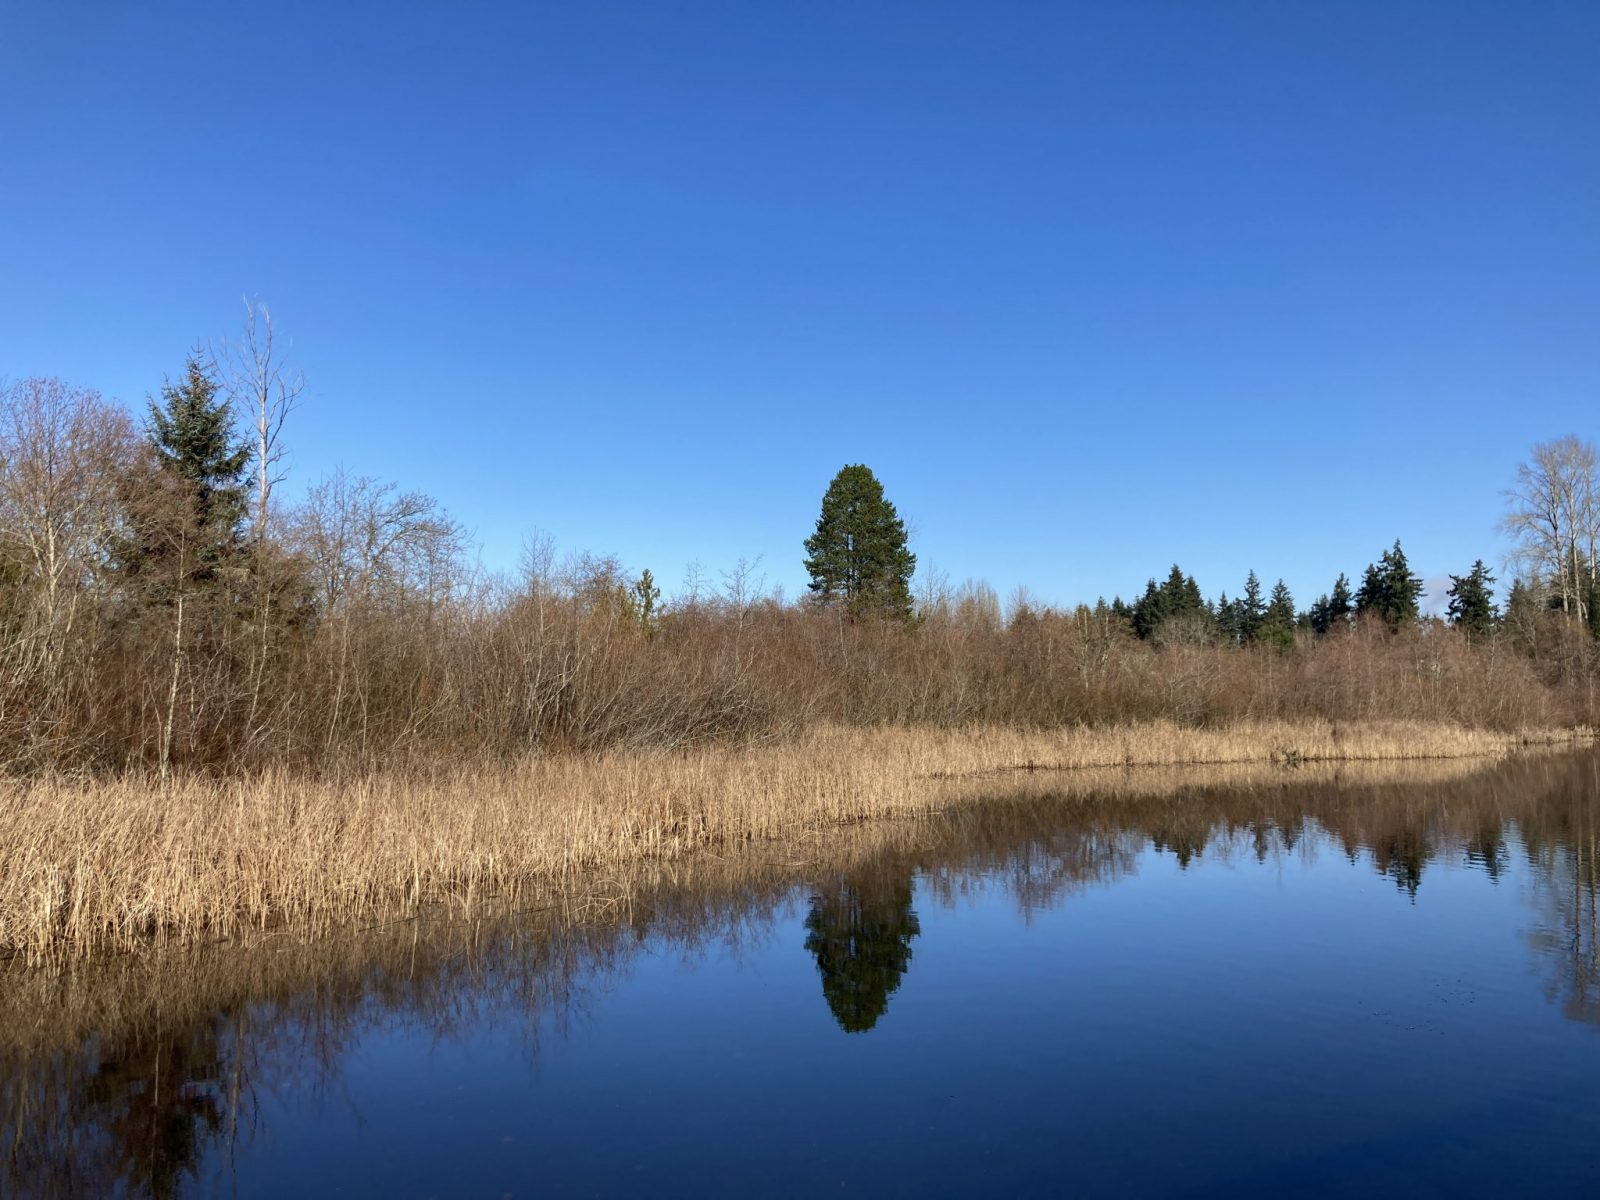 The edge of a small lake on a sunny winter day. The grasses and small shrubs next to the lake are brown. There are evergreen trees in the background